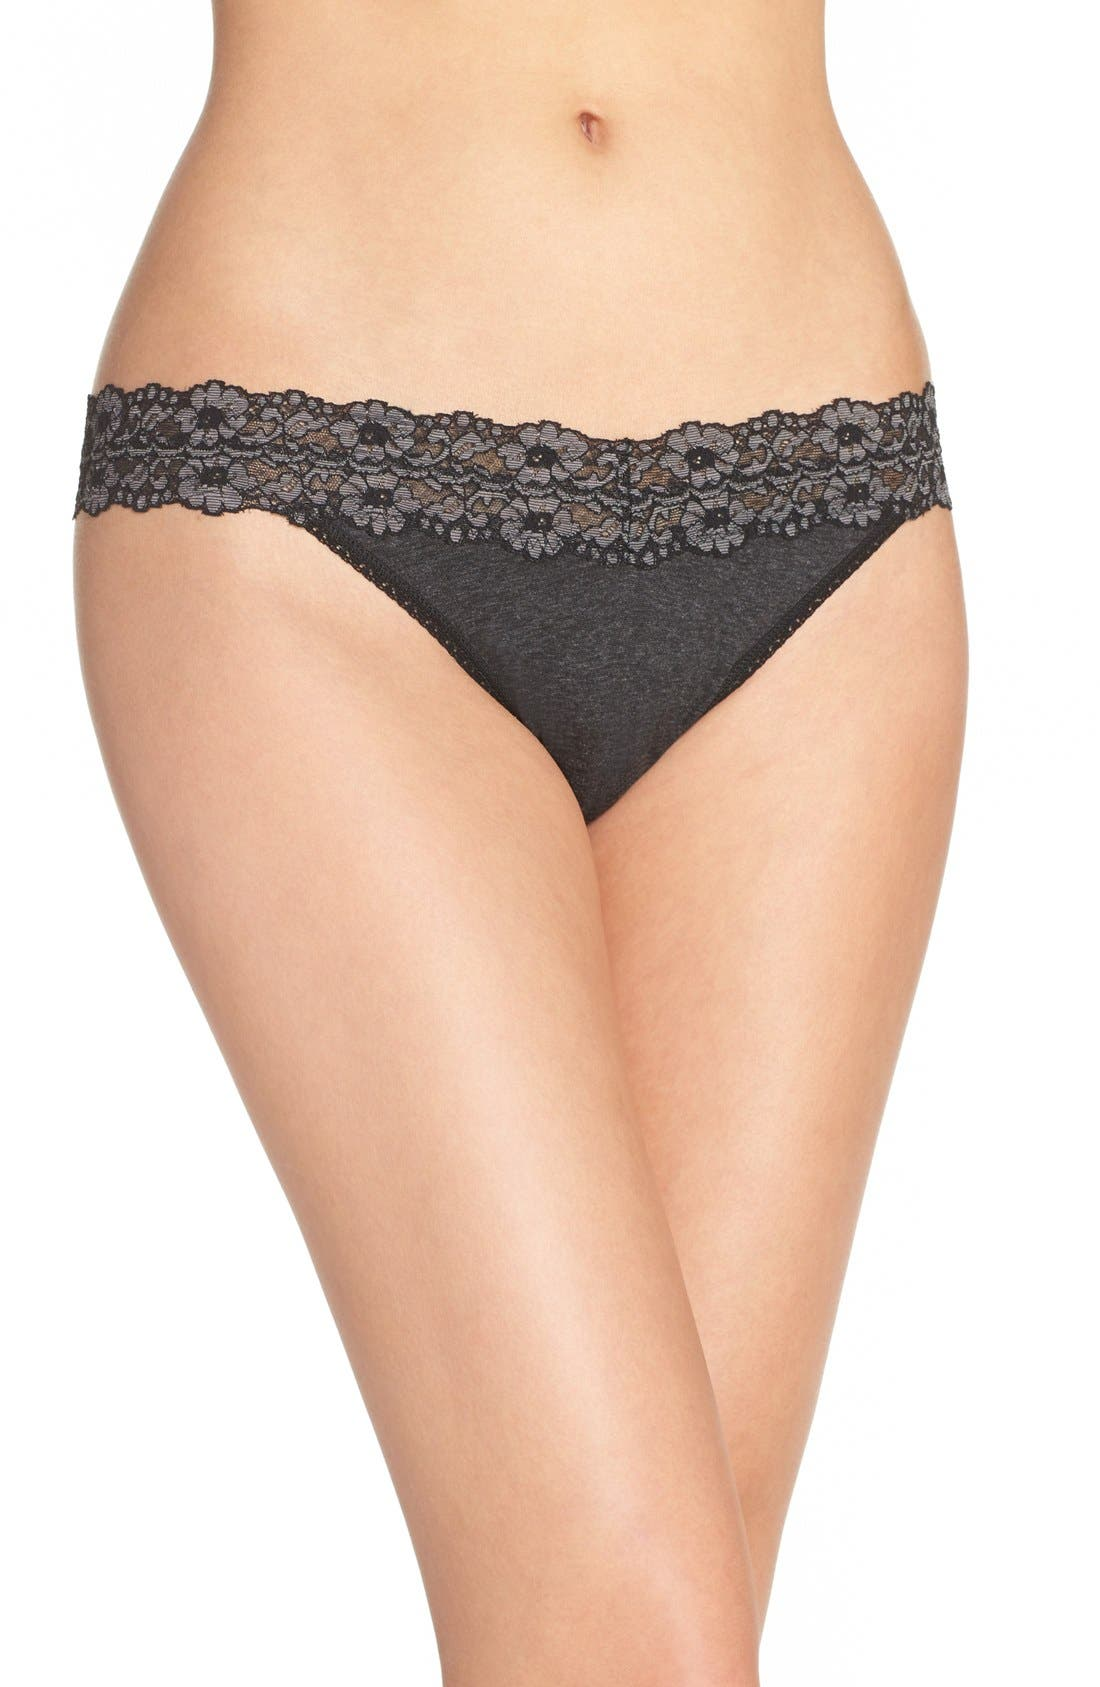 'Heather' Jersey Original Rise Thong,                             Main thumbnail 1, color,                             BLACK HEATHER